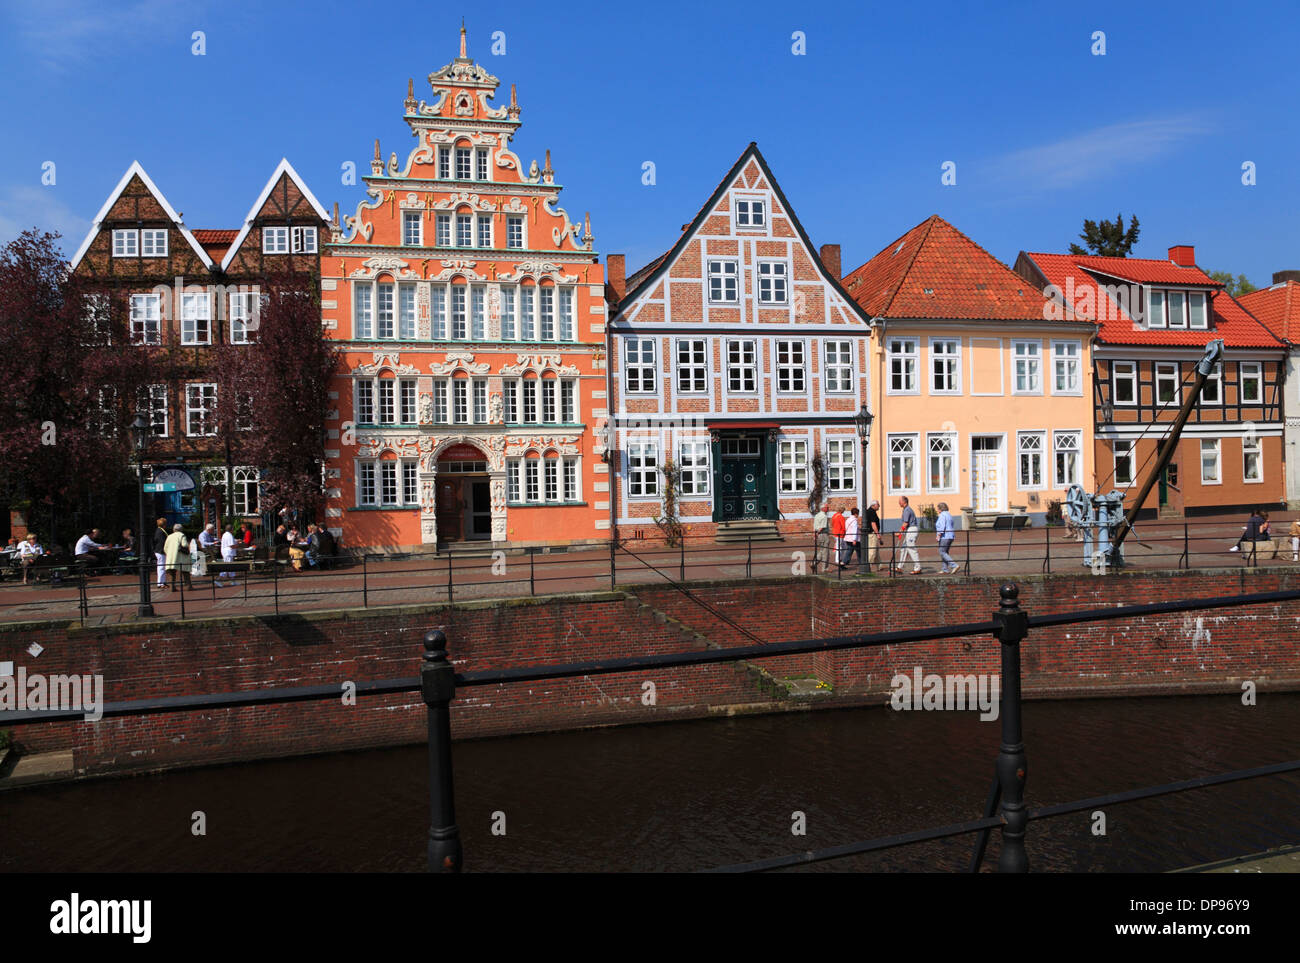 alten hafen in stade altes land niedersachsen deutschland europa stockfoto bild 65356573. Black Bedroom Furniture Sets. Home Design Ideas